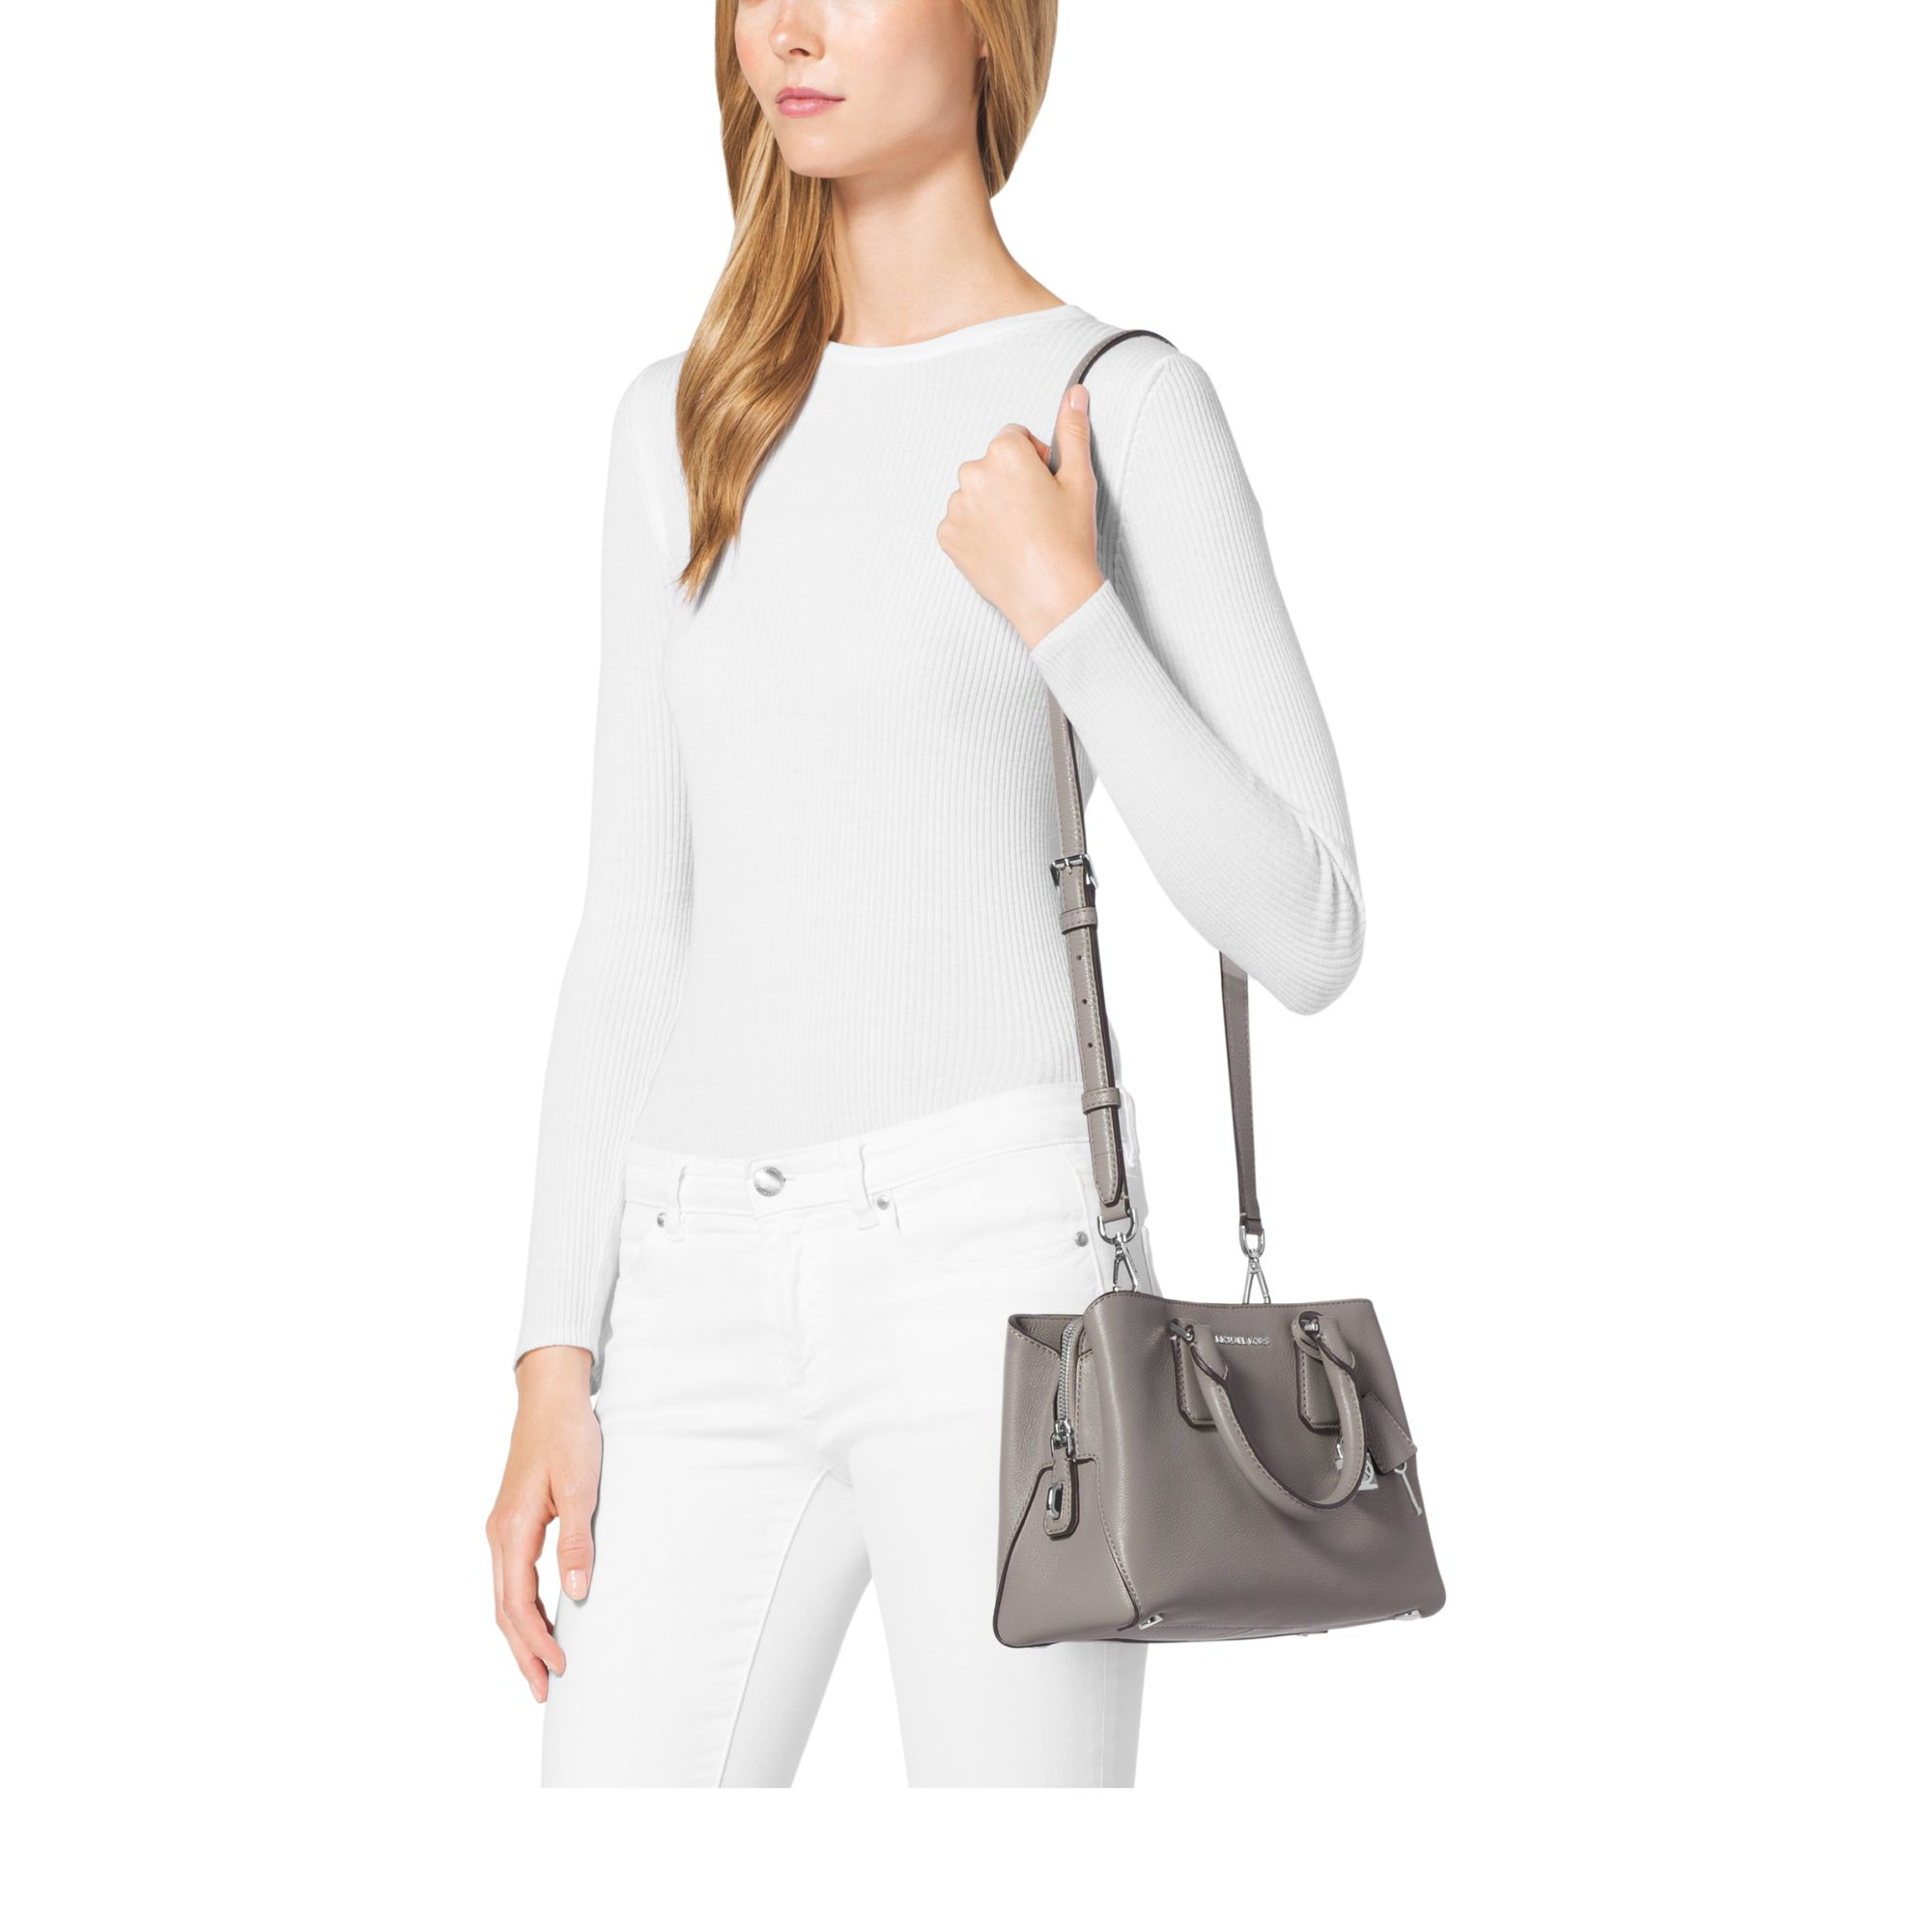 9b01dbfdc2eb Michael Kors Camille Small Leather Satchel in Gray - Lyst